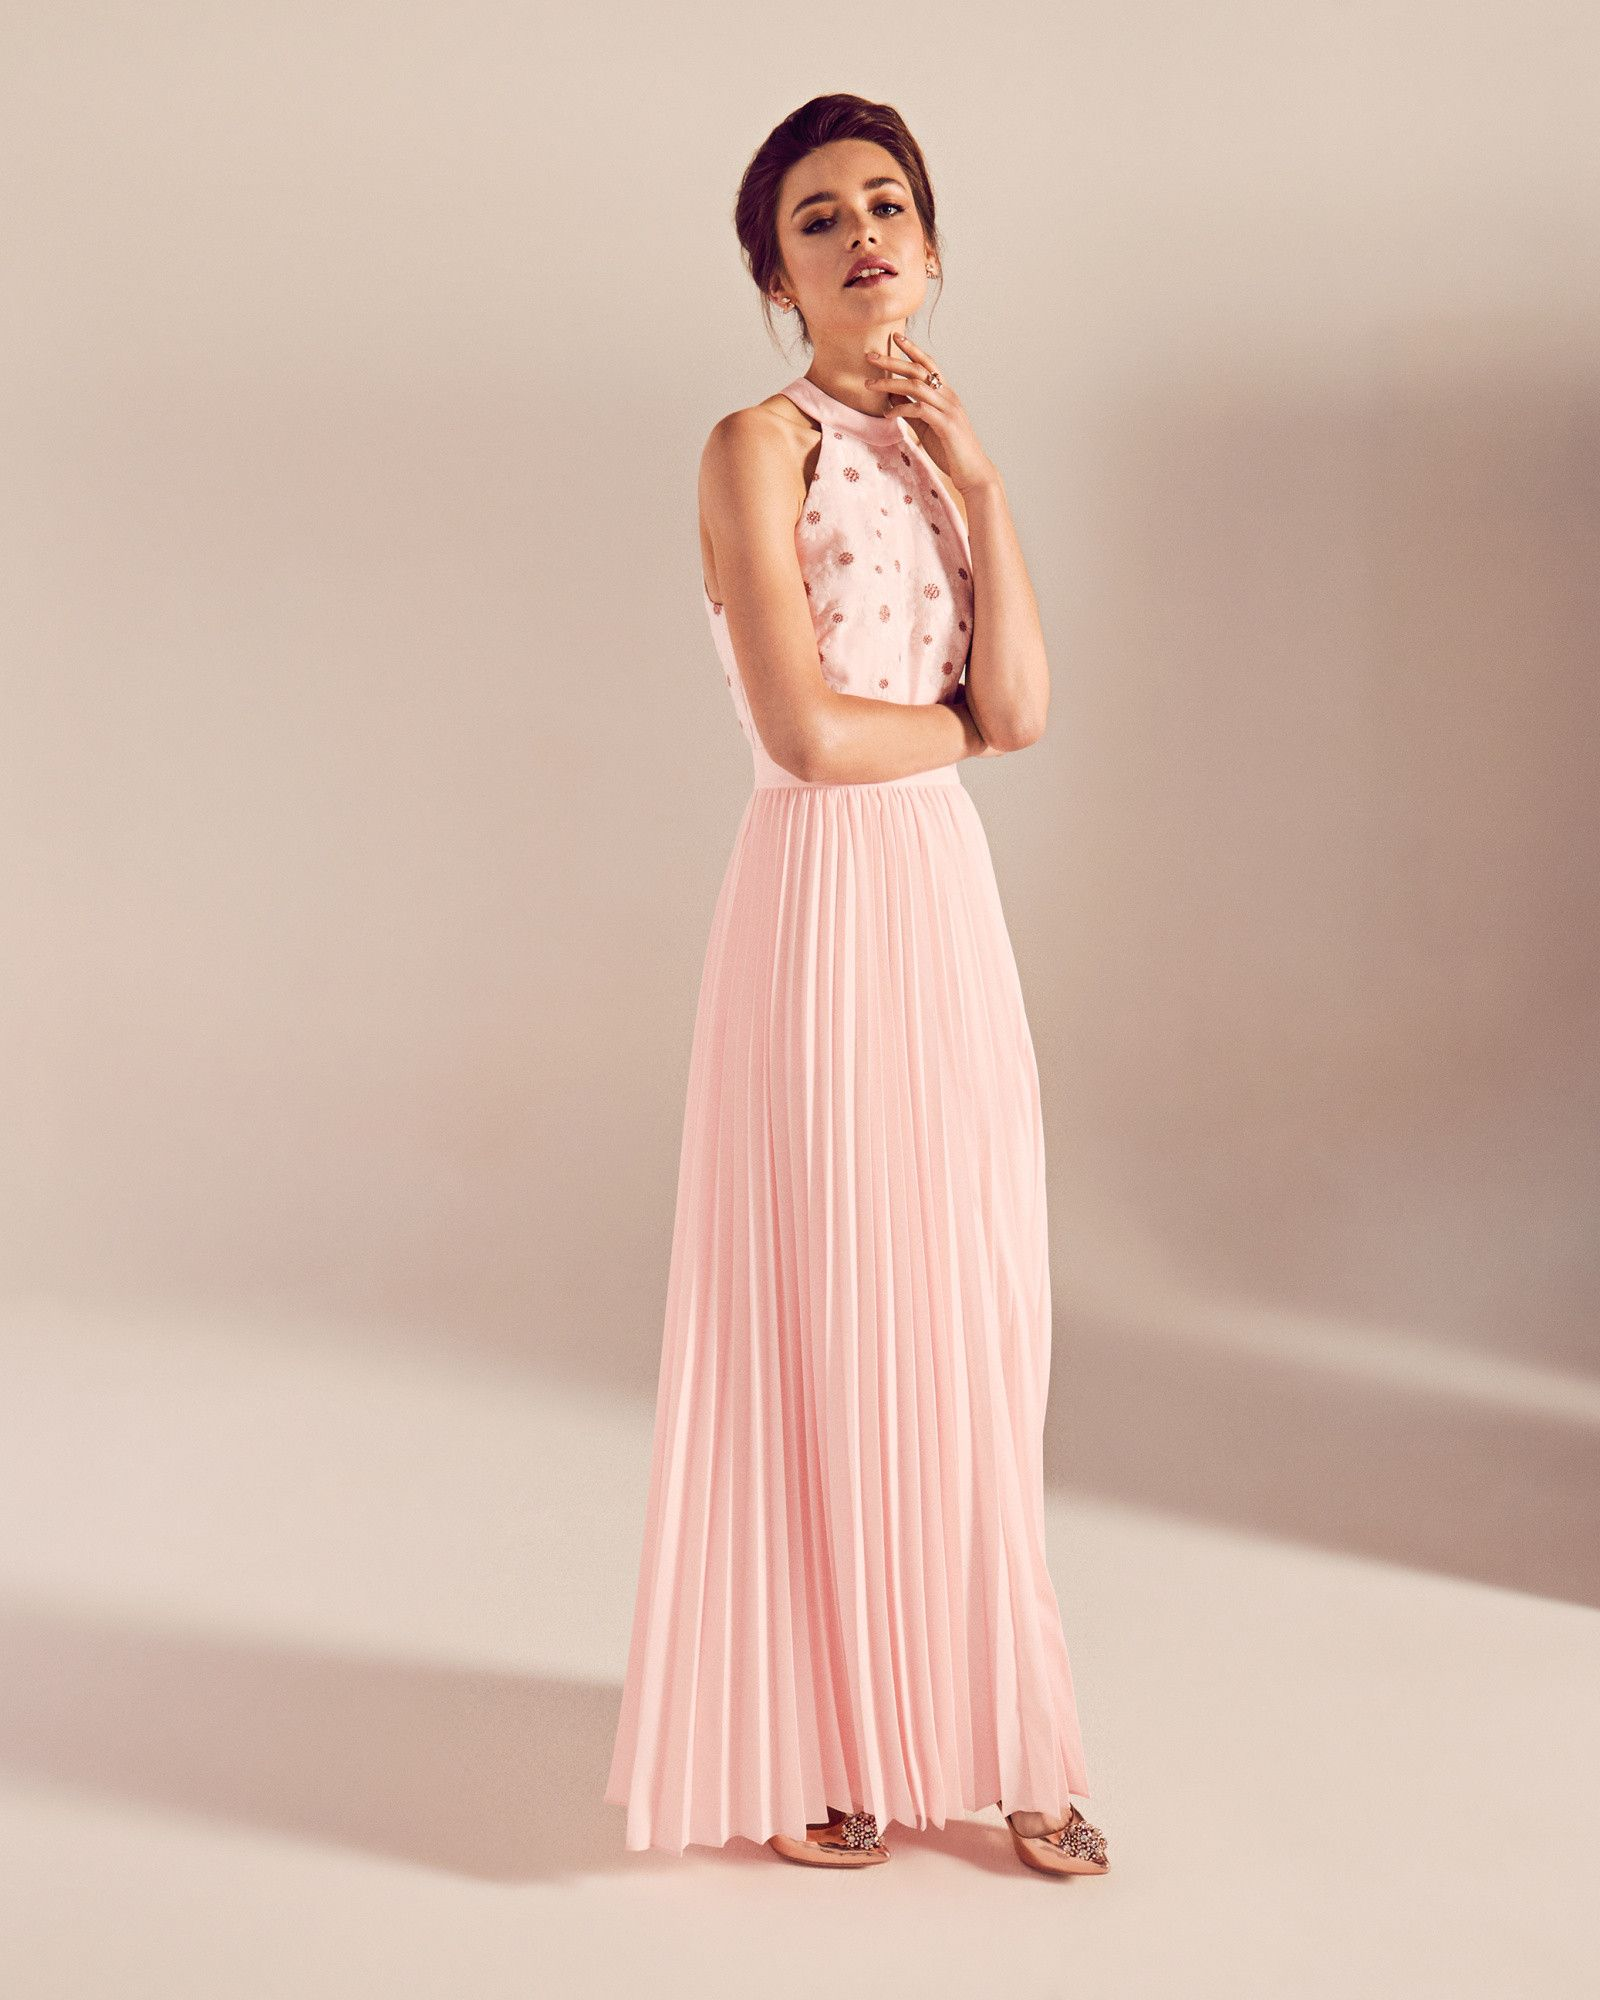 Robe longue fleurie jacquard - Rose | PE17 Tie The Knot | Ted Baker ...